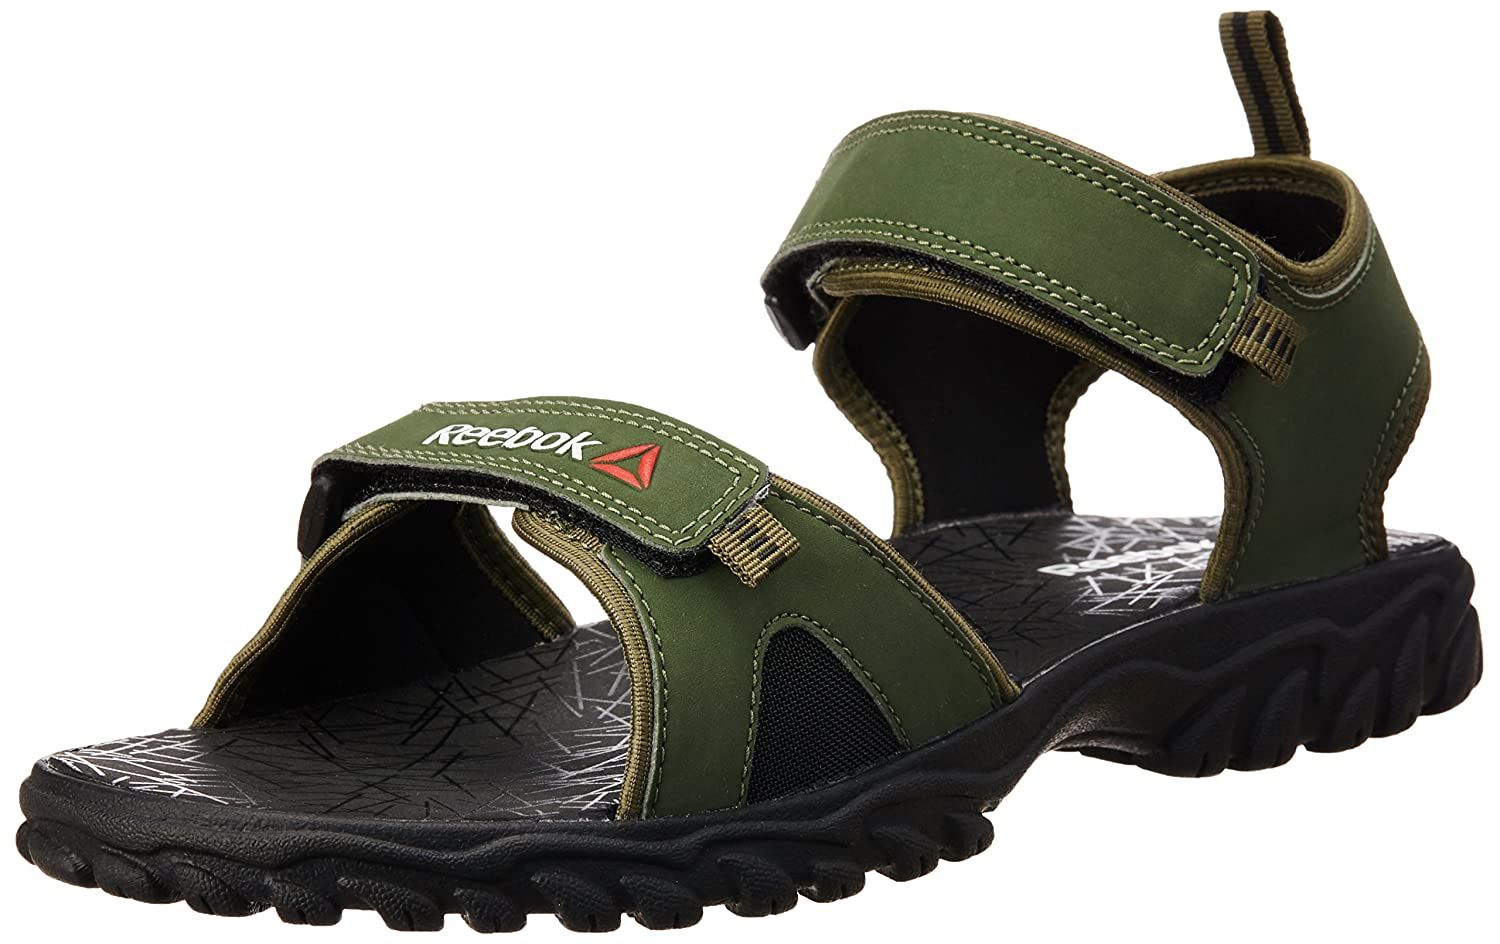 aef92cb3b1cfea Reebok Men s Aztrix Primal Green and Black Sandals - 11 UK India (45.5  EU)(12 US)  Buy Online at Low Prices in India - Amazon.in